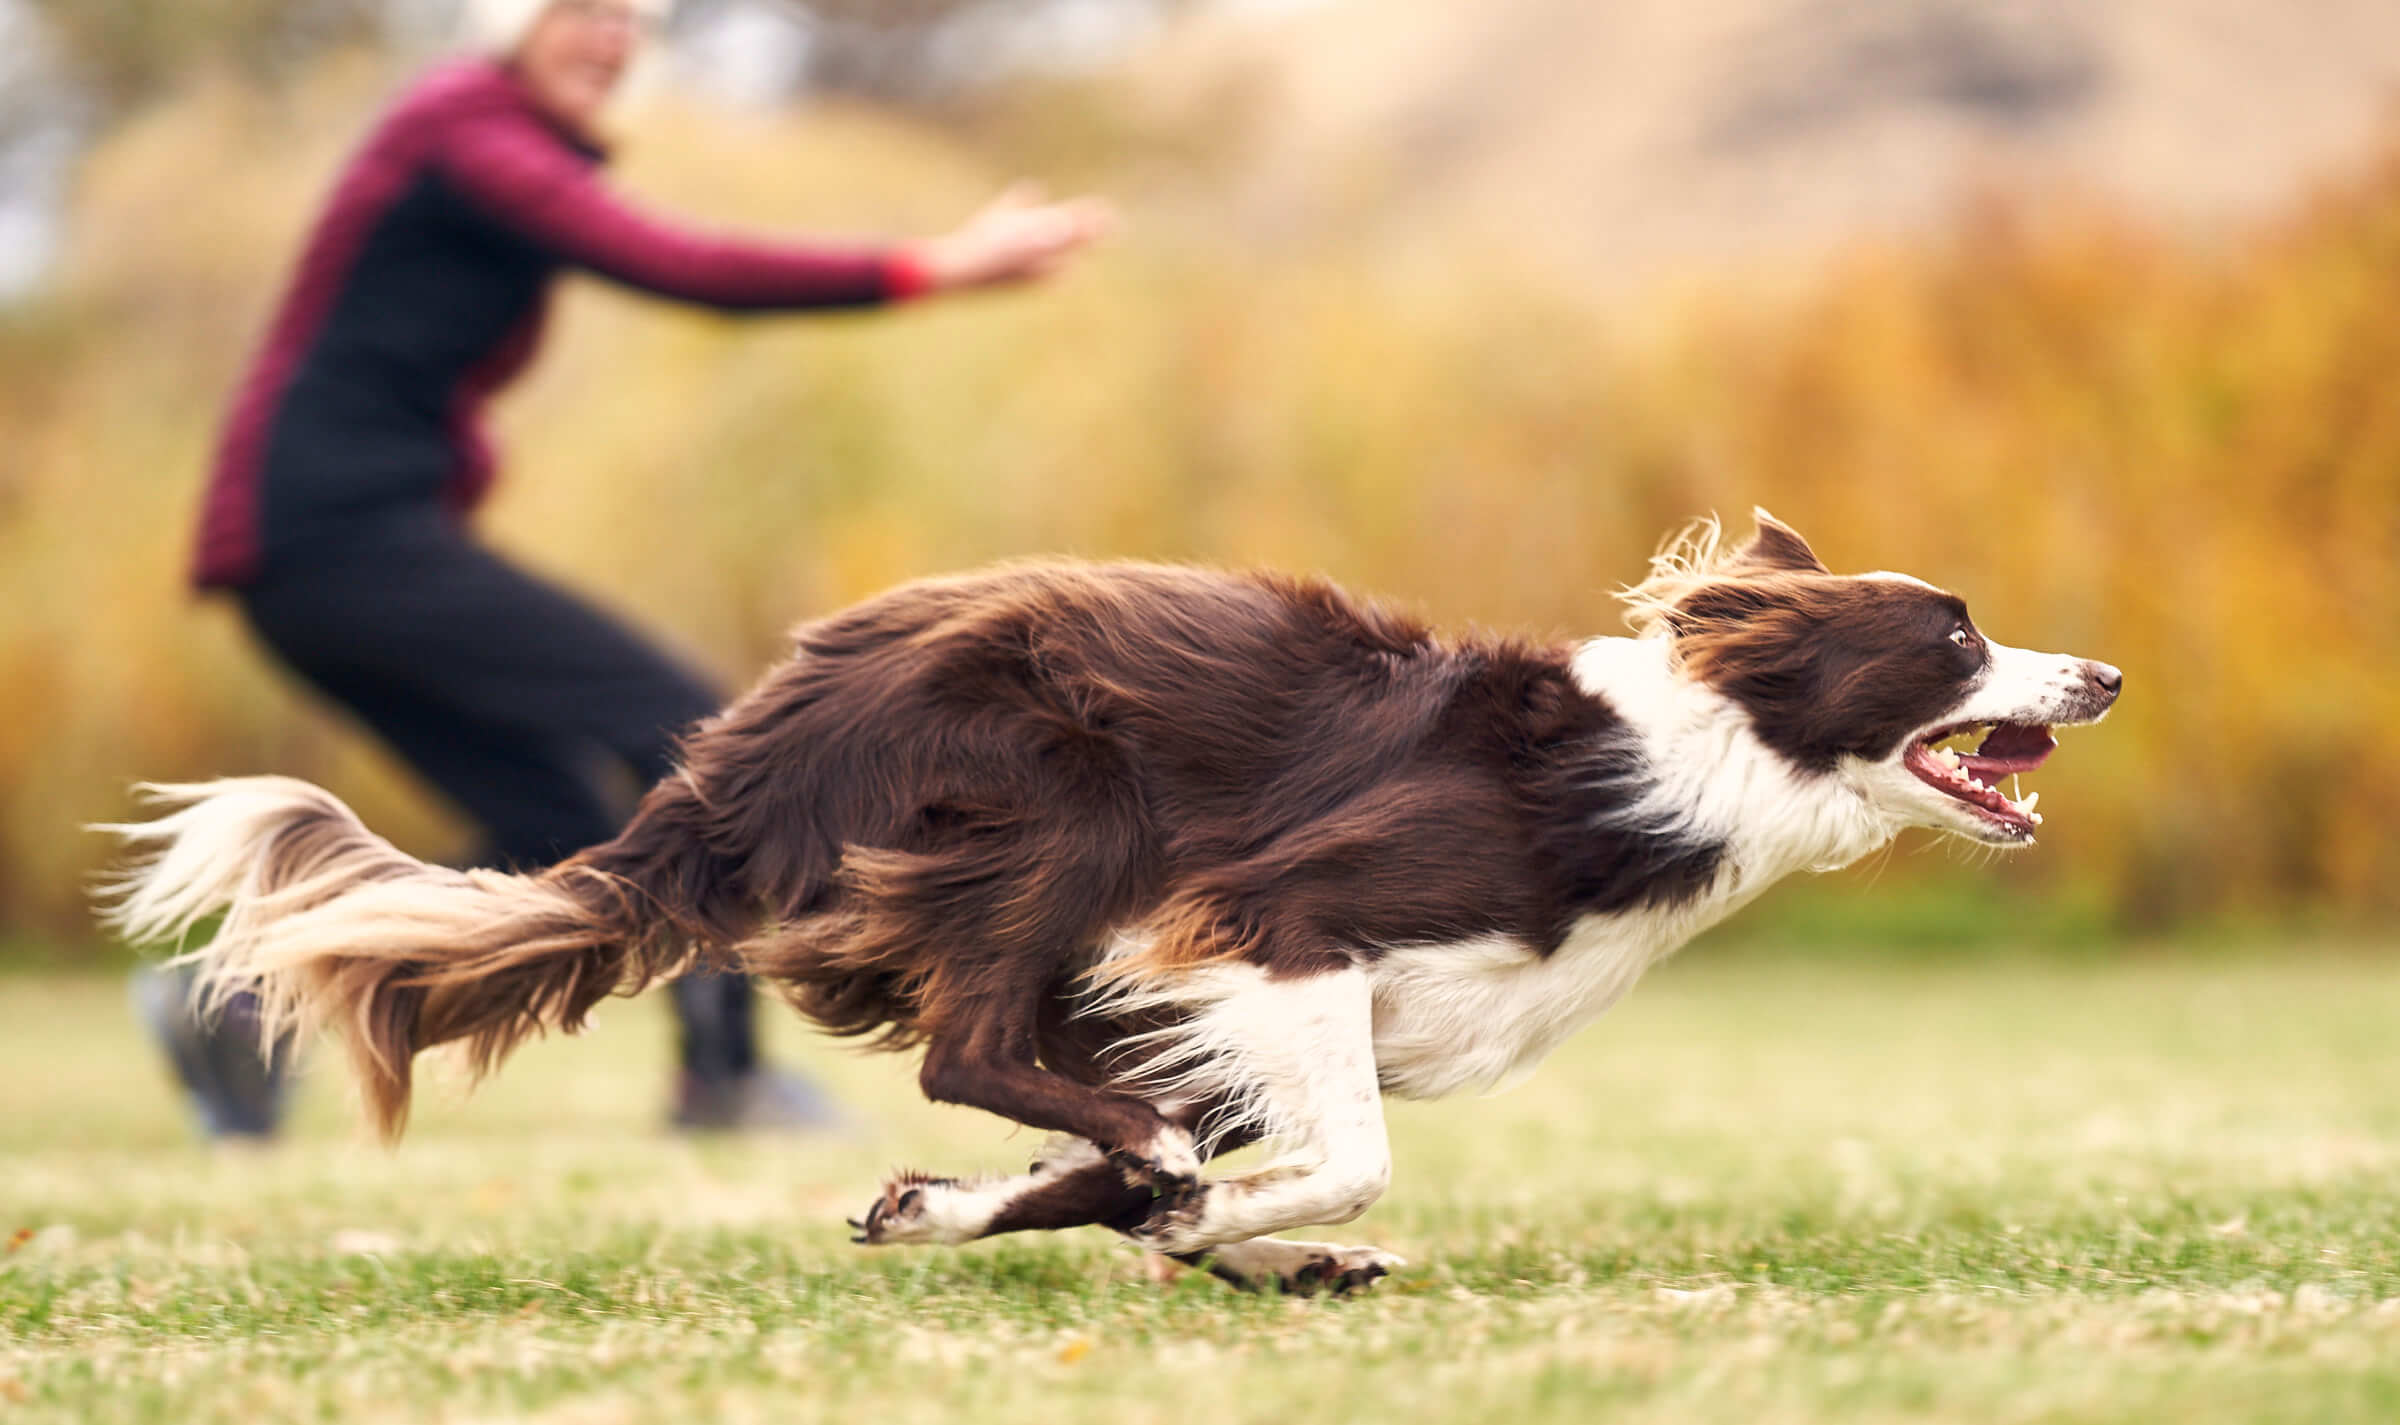 Border Collie agility dog sports photography in Spokane, Washington